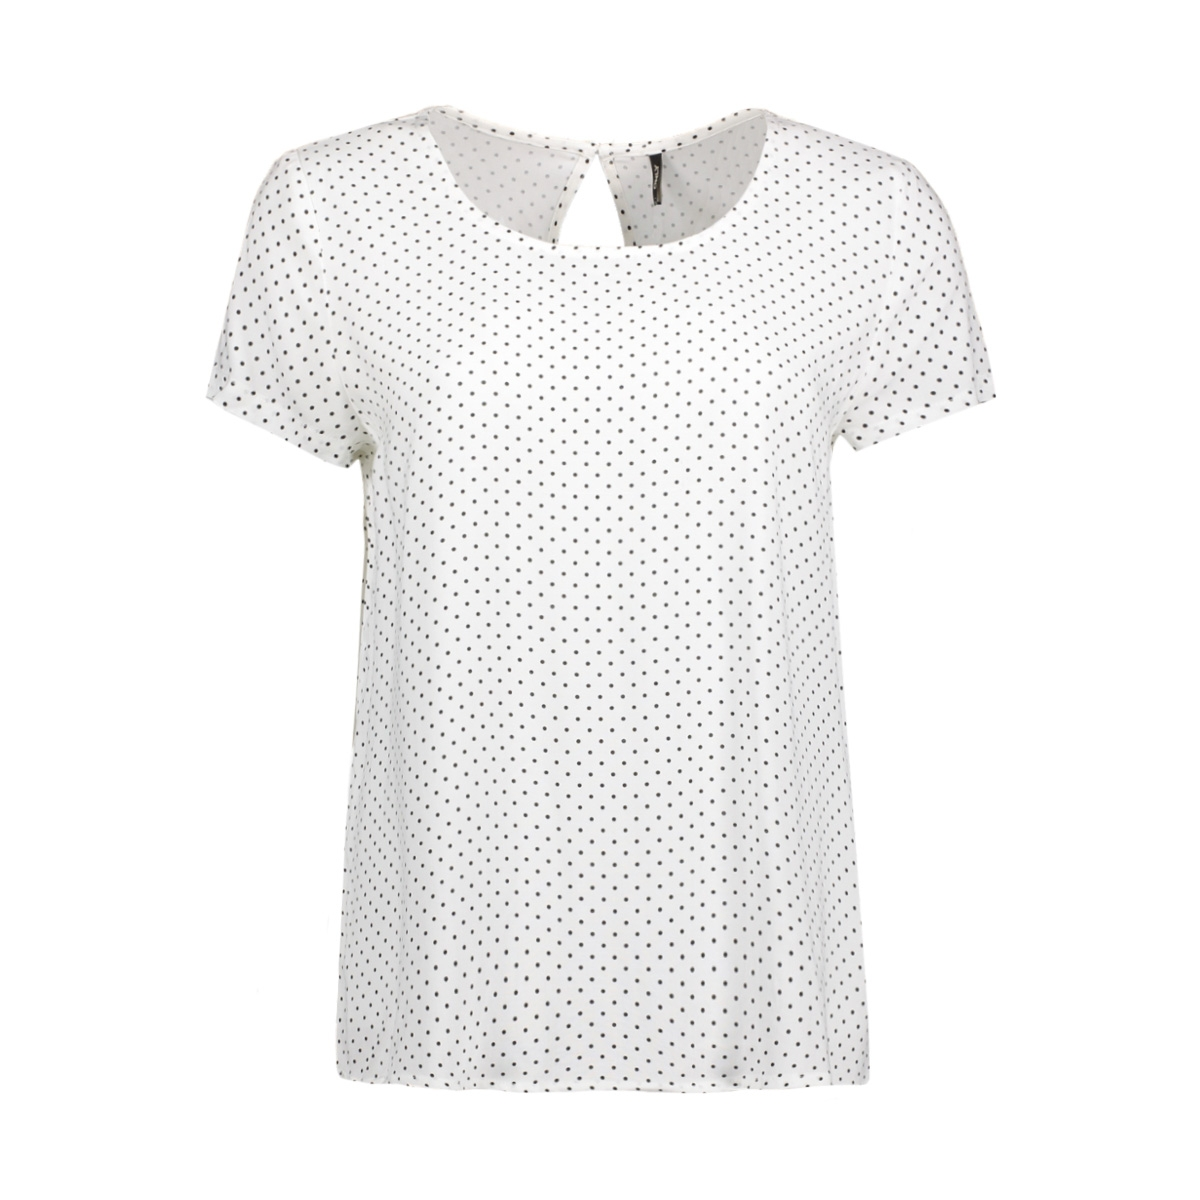 onlfirst ss mix aop top  noos wvn 15138761 only t-shirt cloud dancer/ w. black dots